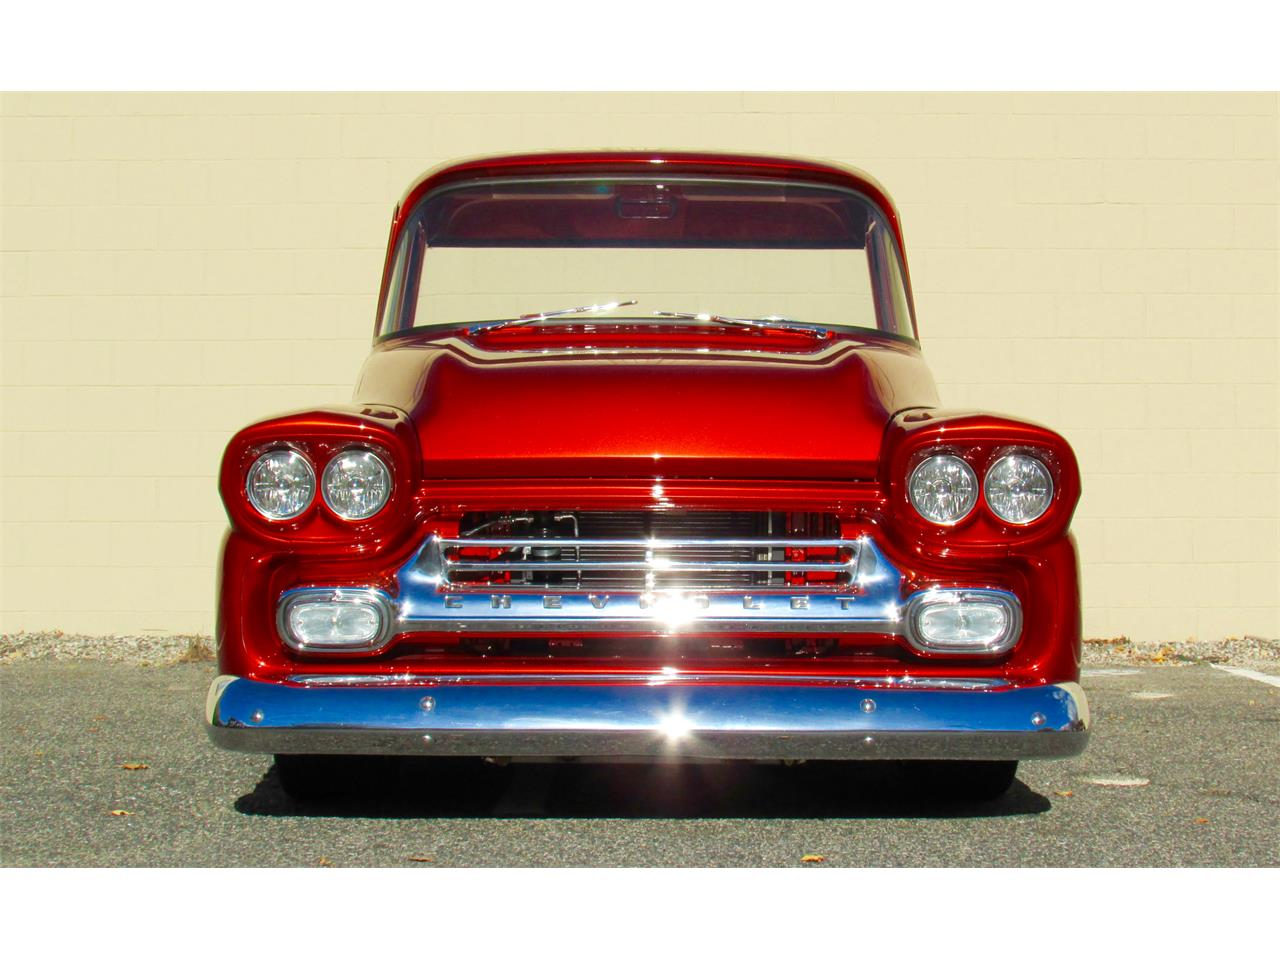 Large Picture of '59 Chevrolet Fleetside Custom Pickup Truck  - $169,000.00 - JPTV